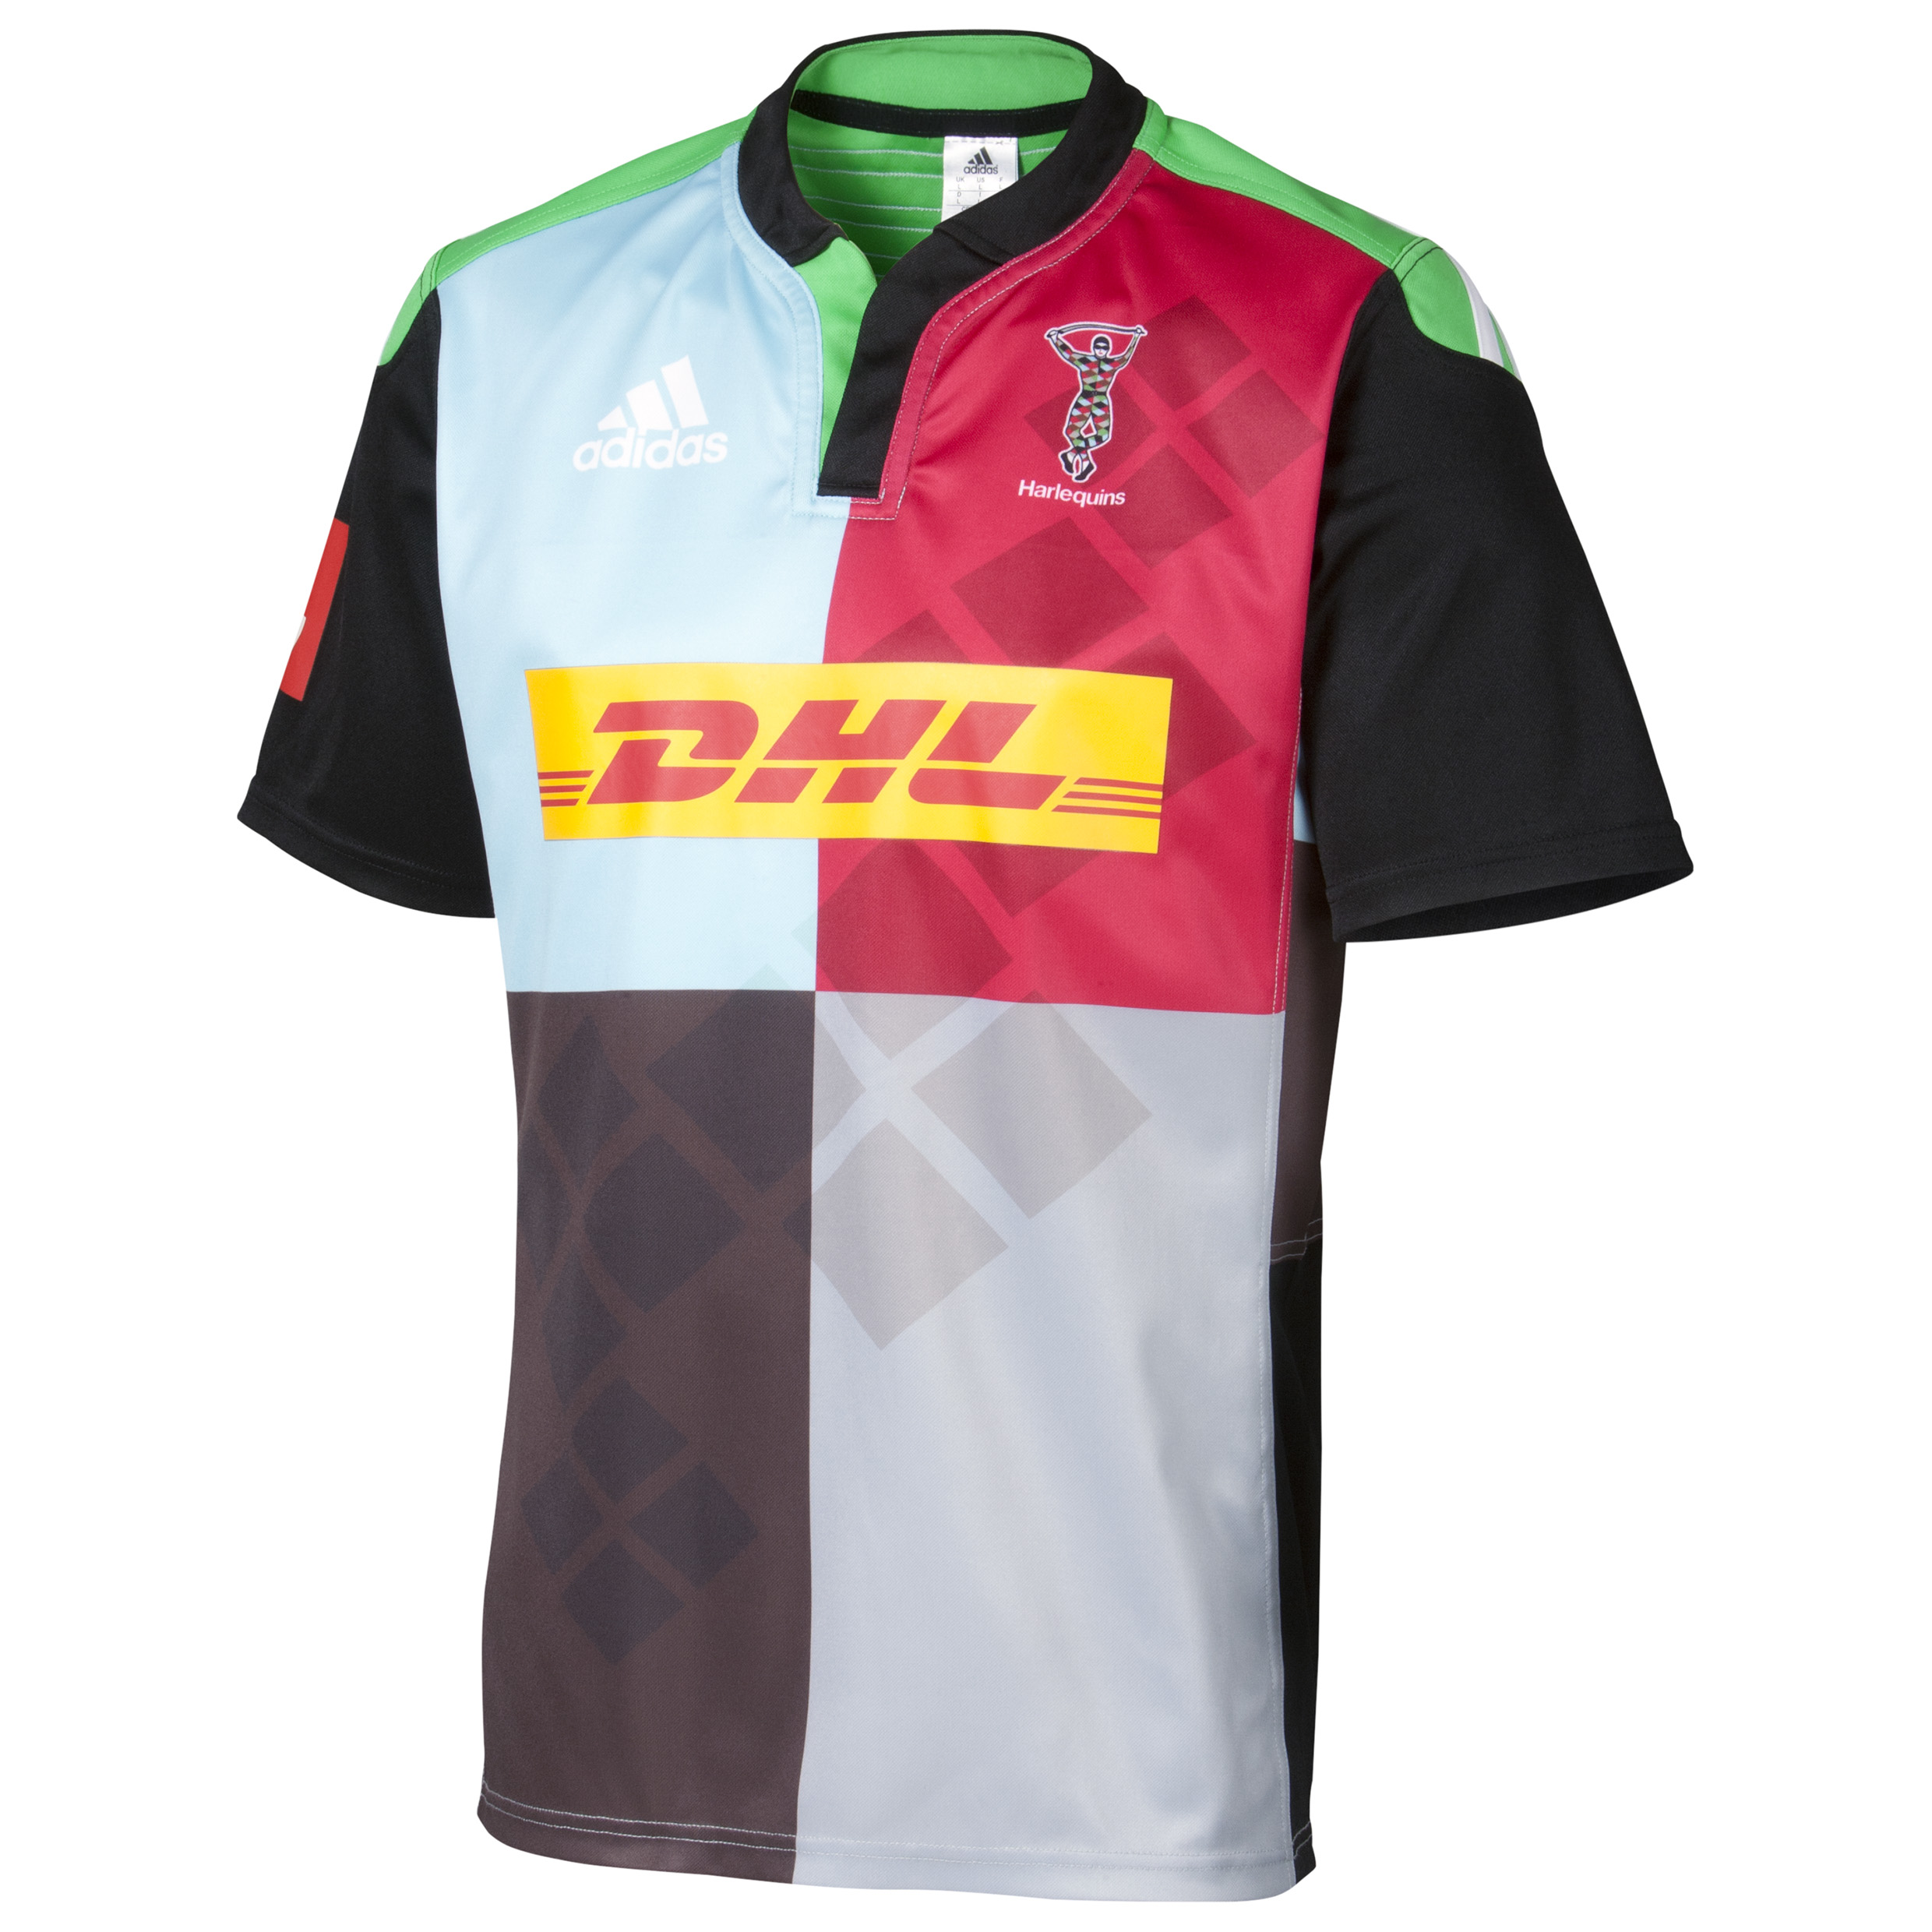 Harlequins Home Short Sleeve Shirt 2014/15 - Kids Black